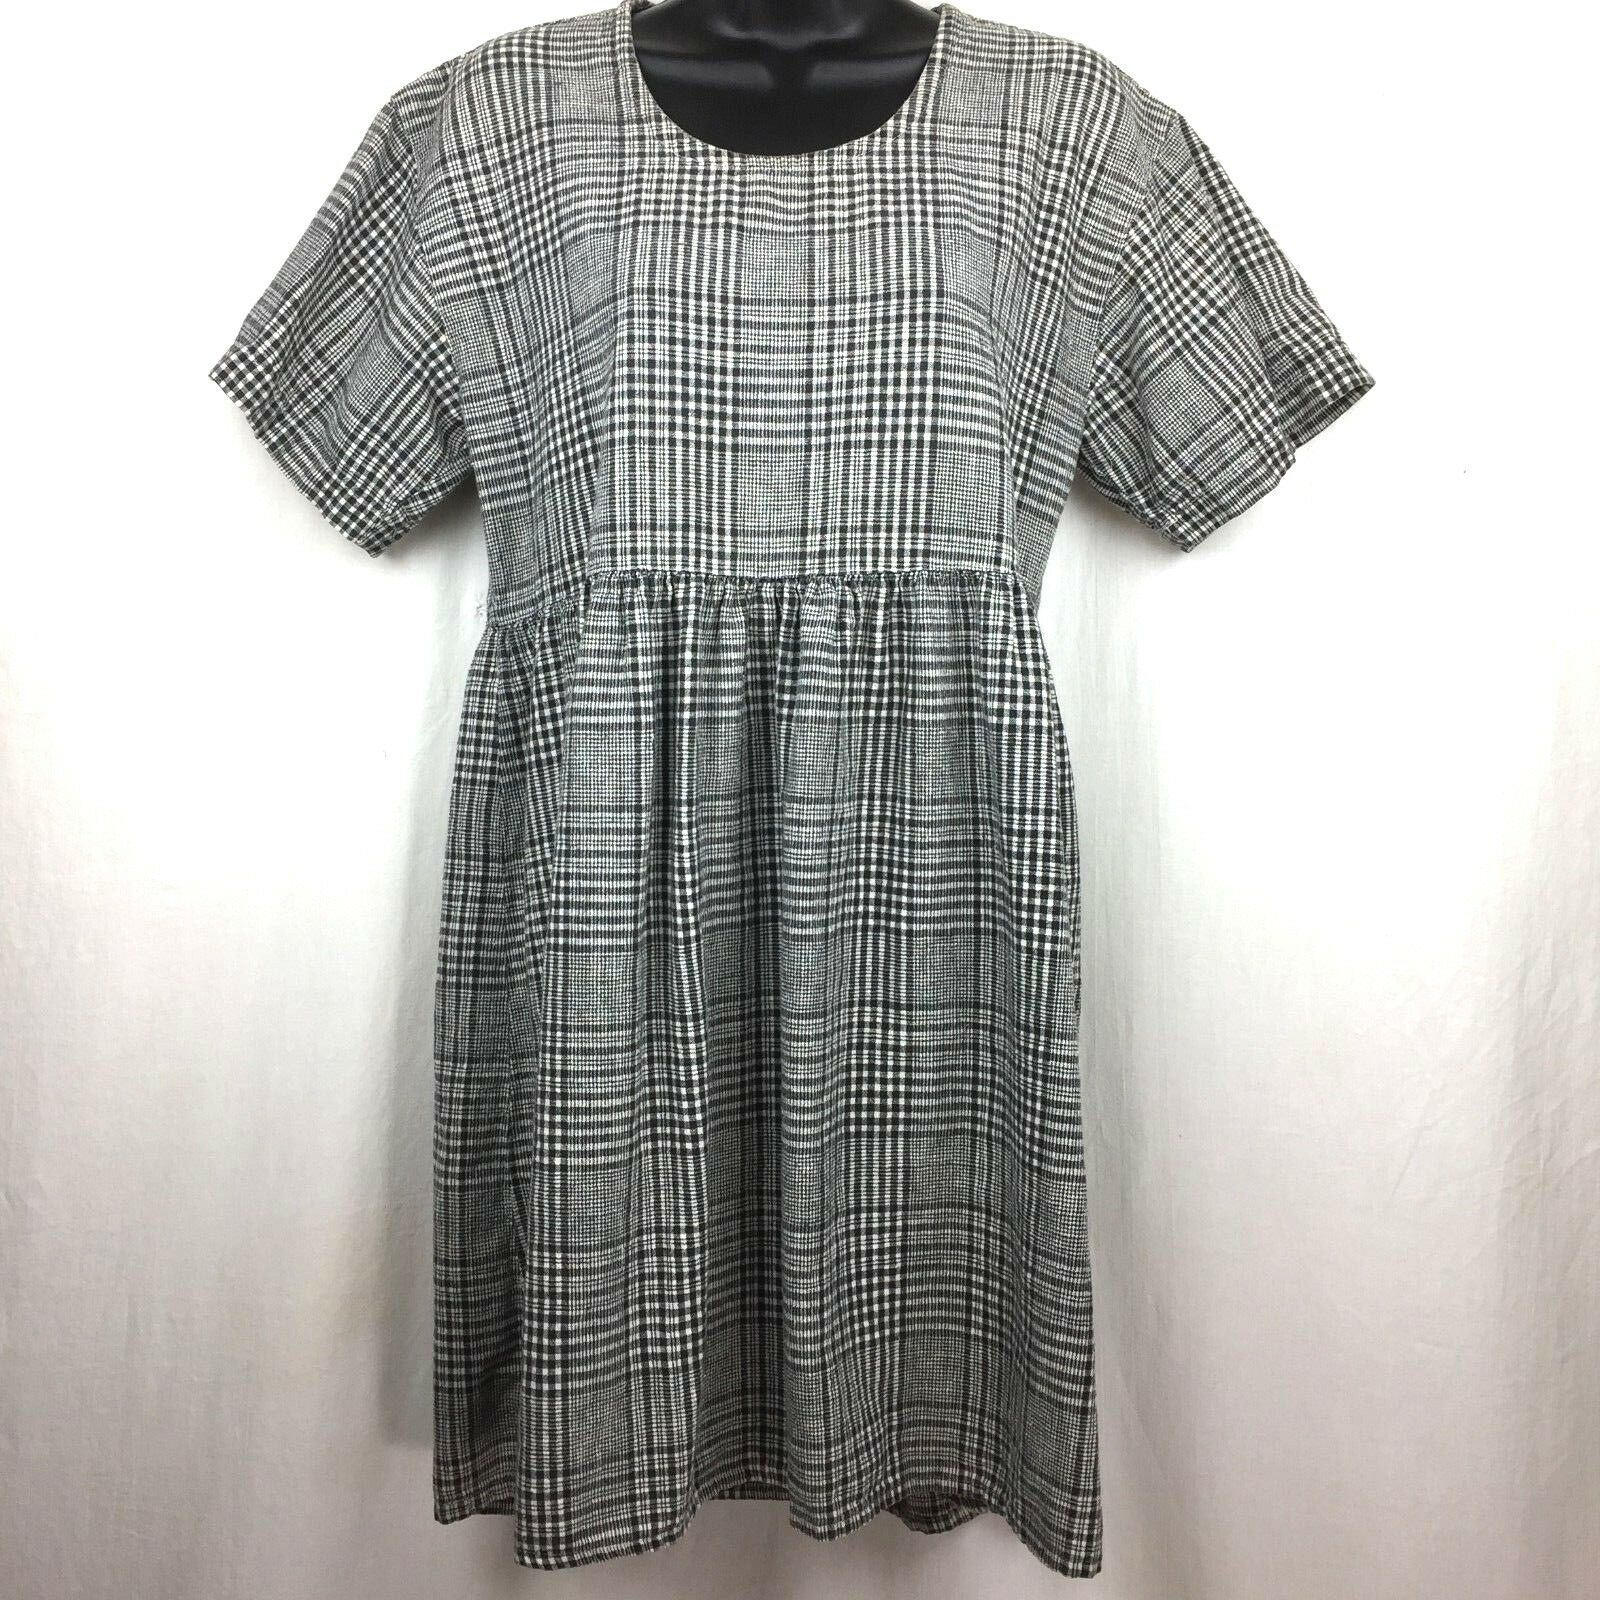 Match Plaid Black White Short Sleeve Dress Linen Cotton Blend Size S B5